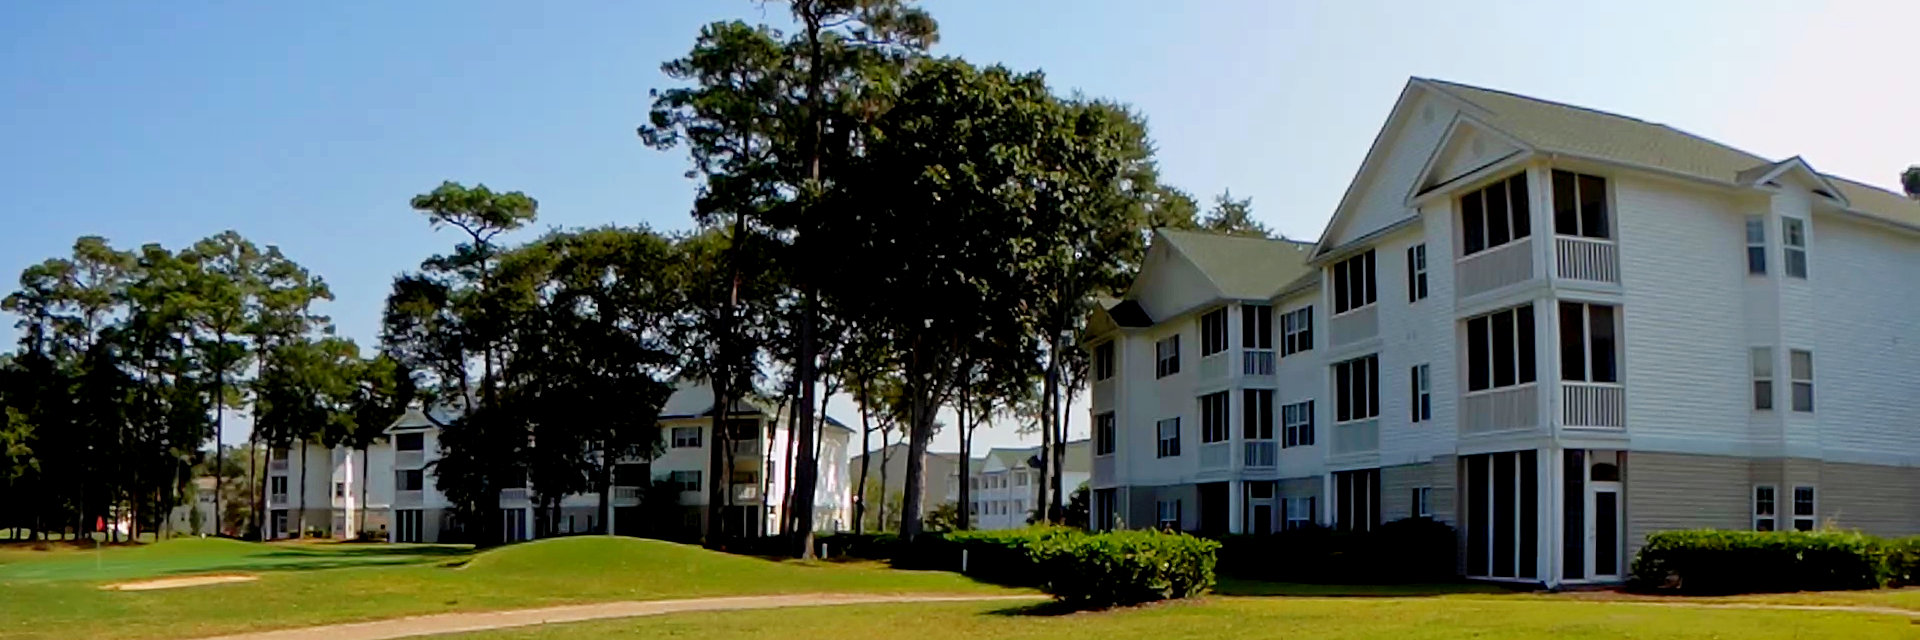 Eastport Condos Little Rriver SC